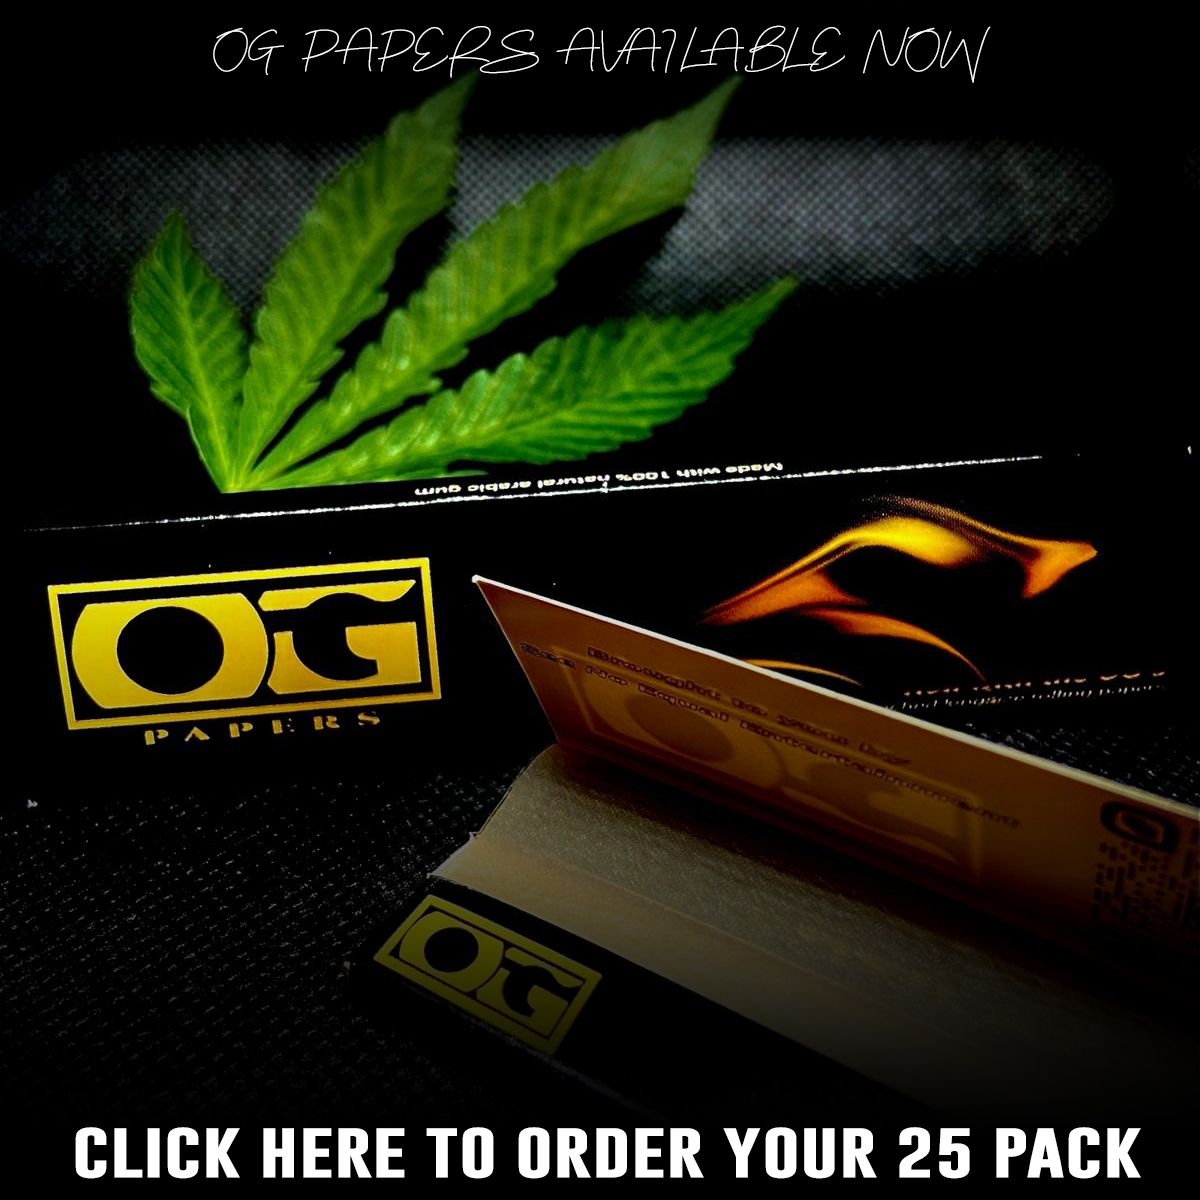 Get your OG papers here